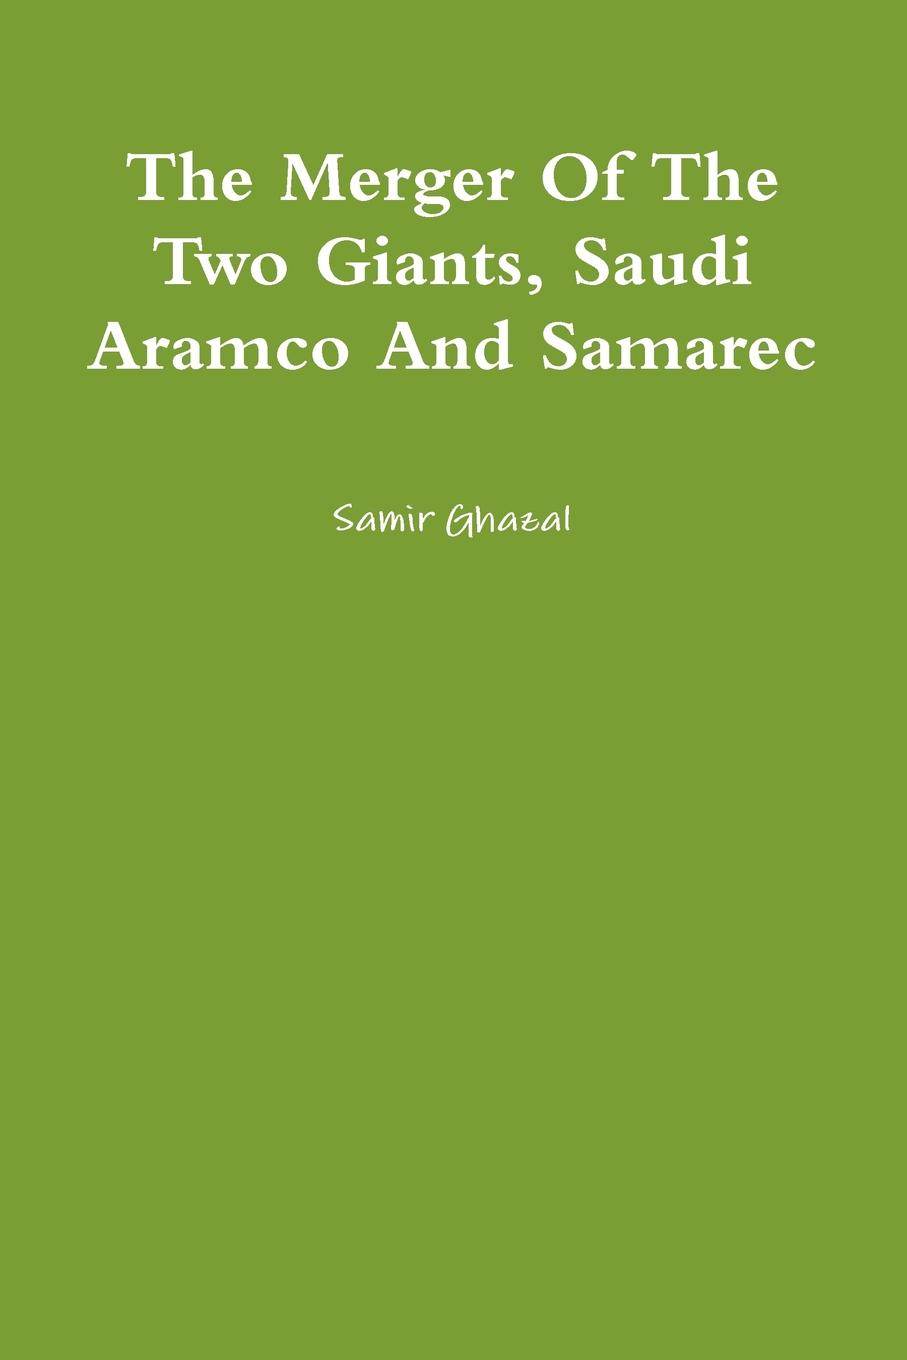 The Merger of the Two Giants, Saudi Aramco and Samarec This book describes the merger between Saudi Aramco and Samarec that...